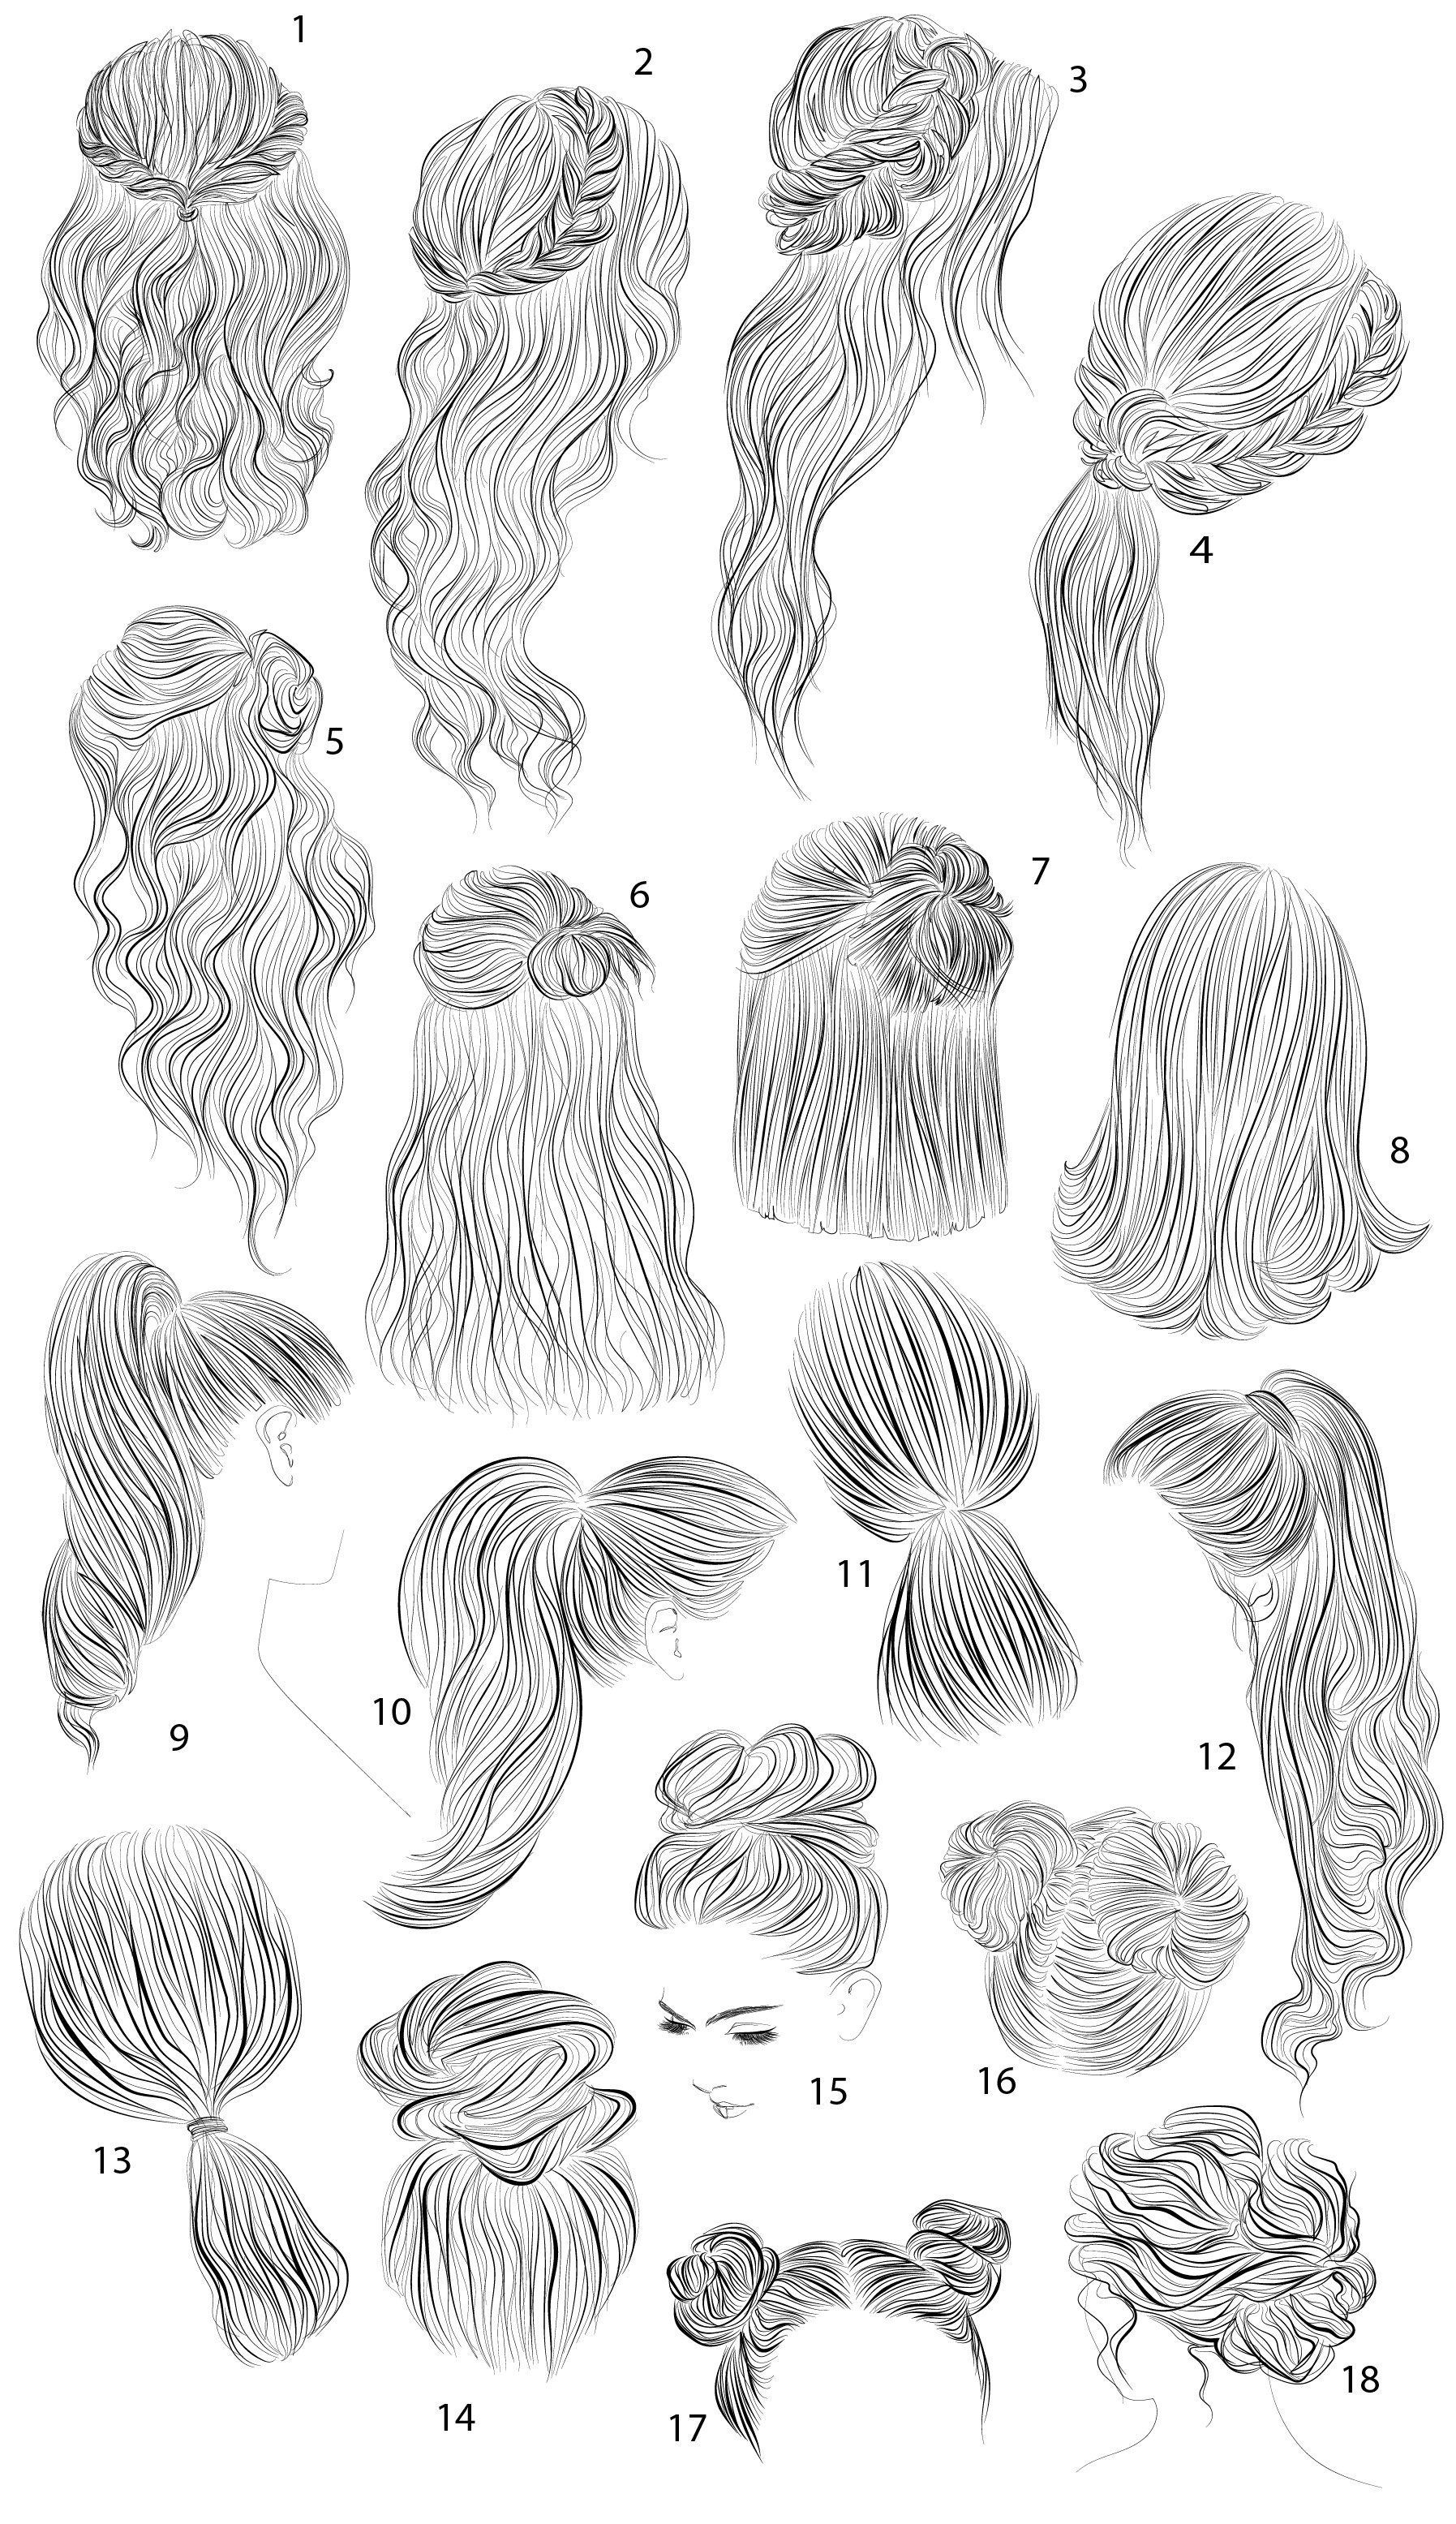 18 vector female hairstyles by colorshop on Creative Market – #colorshop #creati…